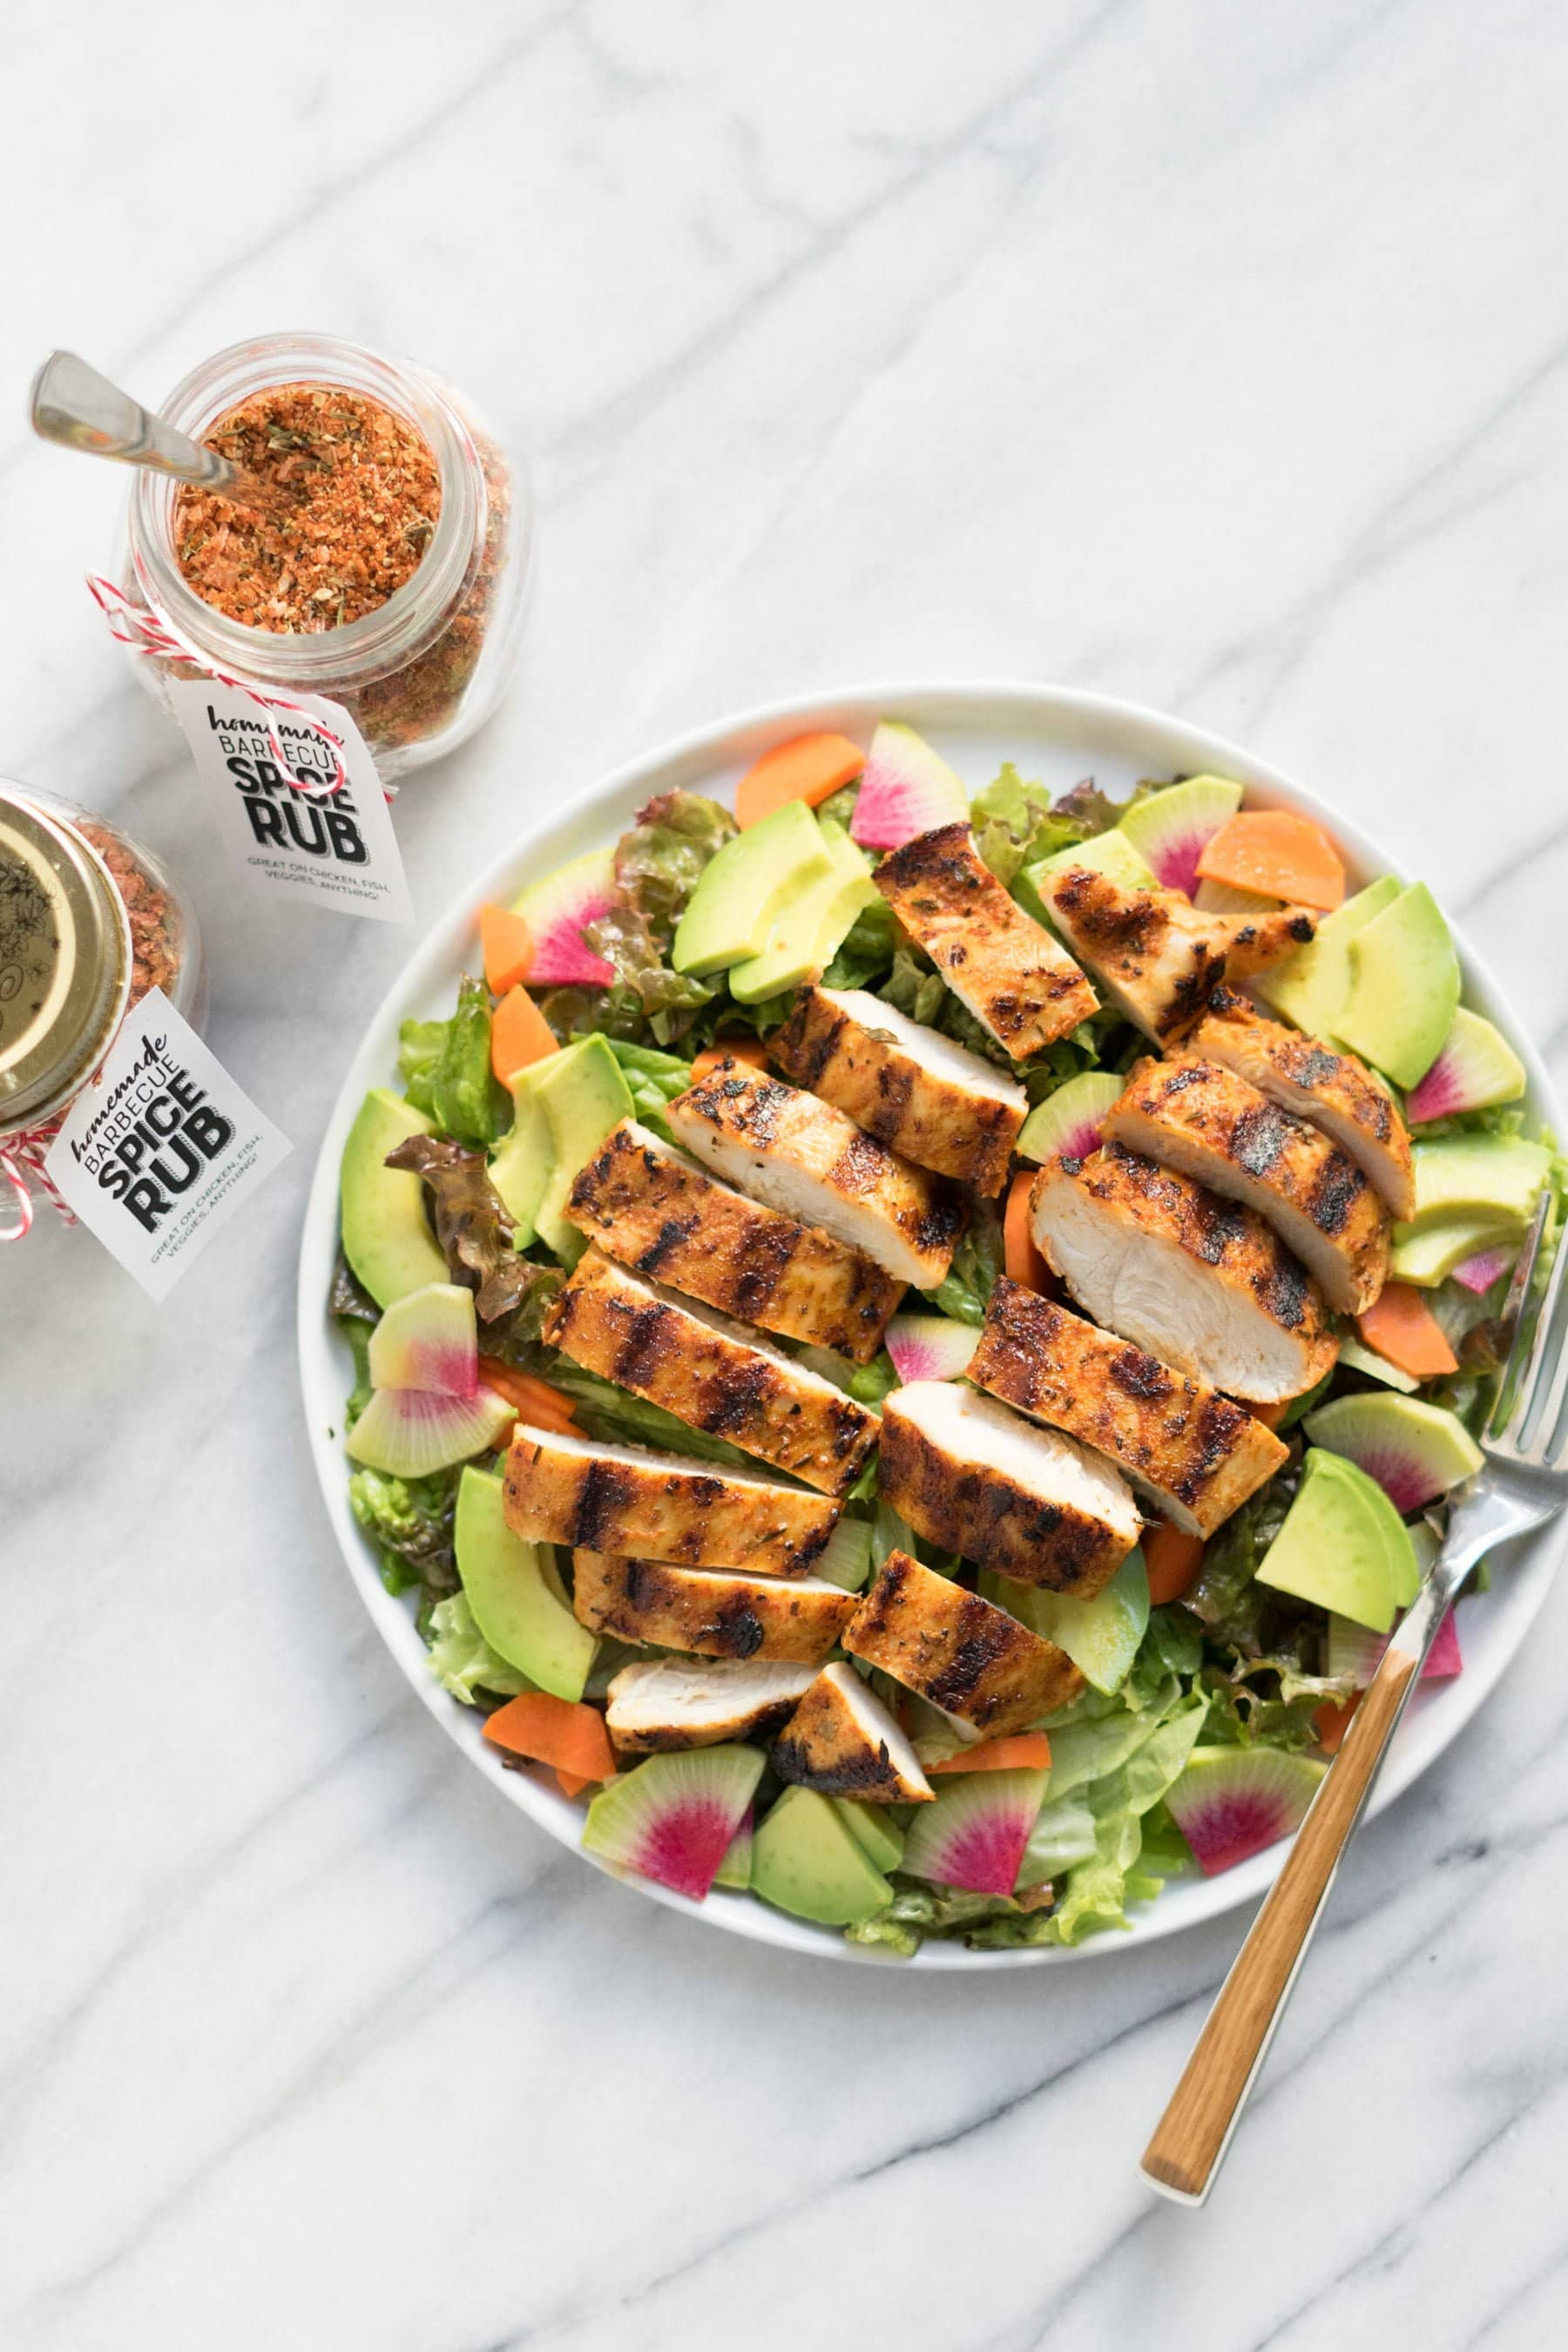 Salad with Barbecue Spice Rub